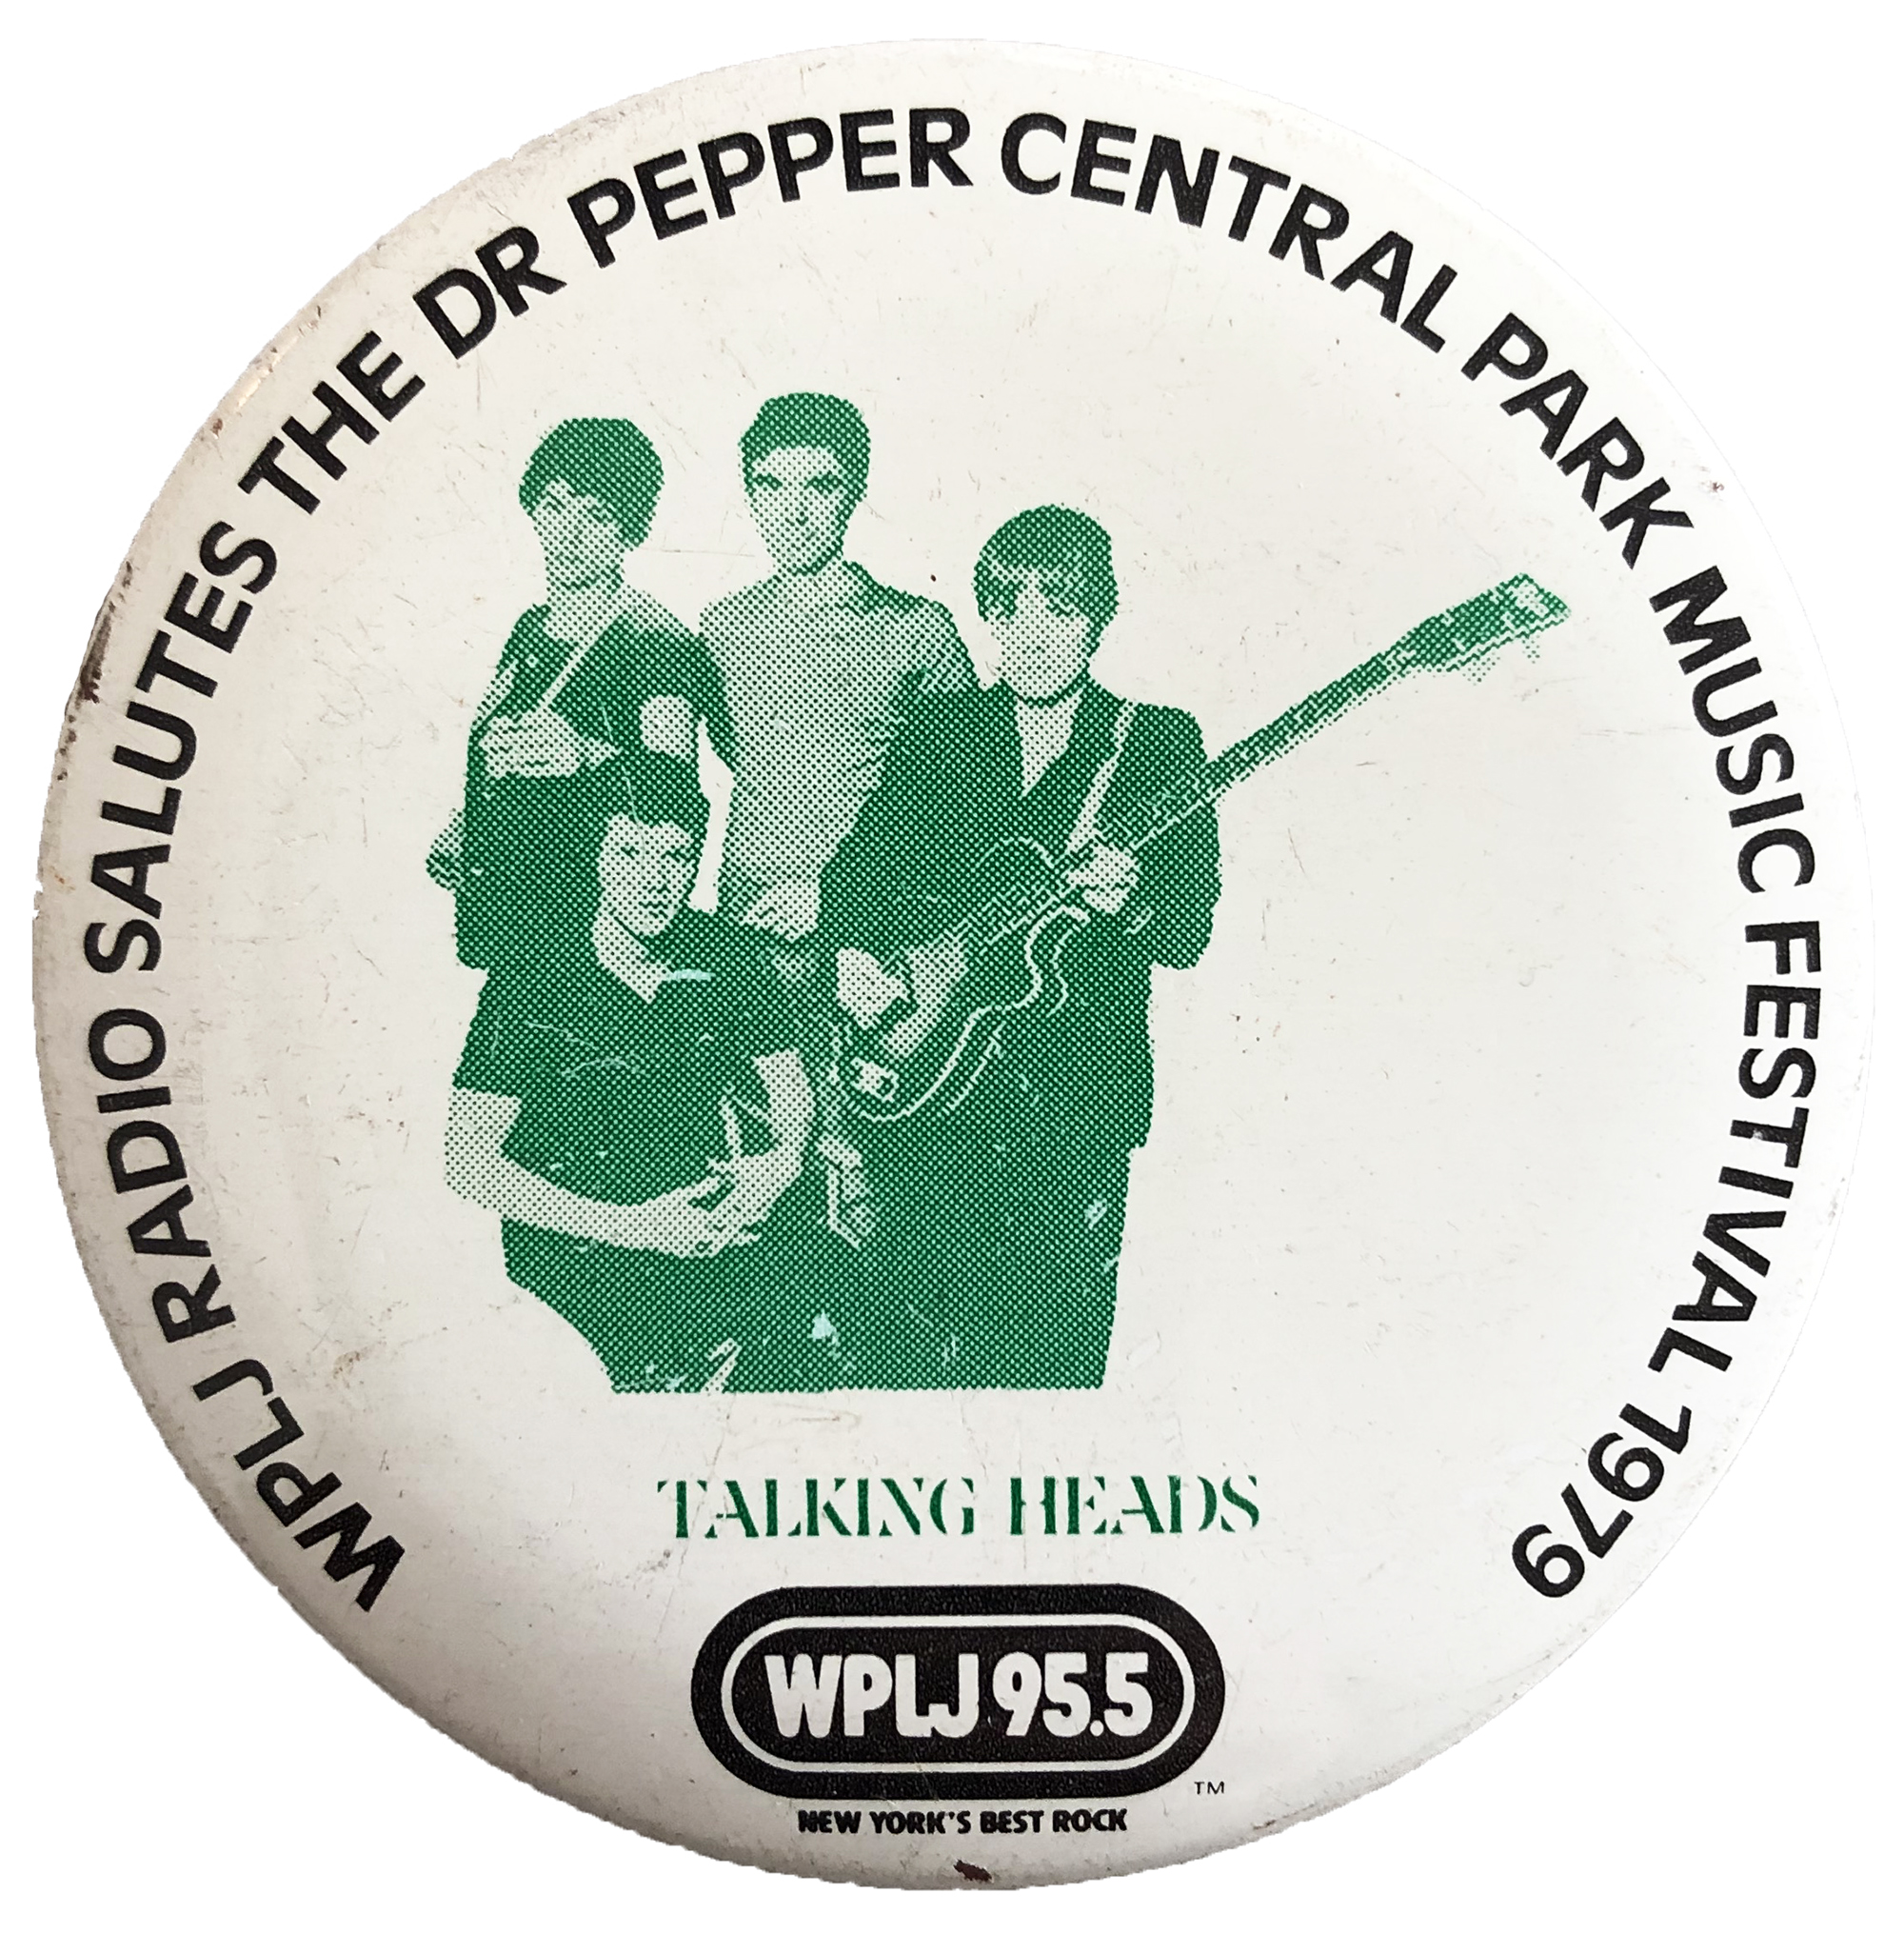 "Talking Heads Vintage Pin from Central Park on 10 Aug 79: 2 1/4"" x 2 1/4"" Pin"